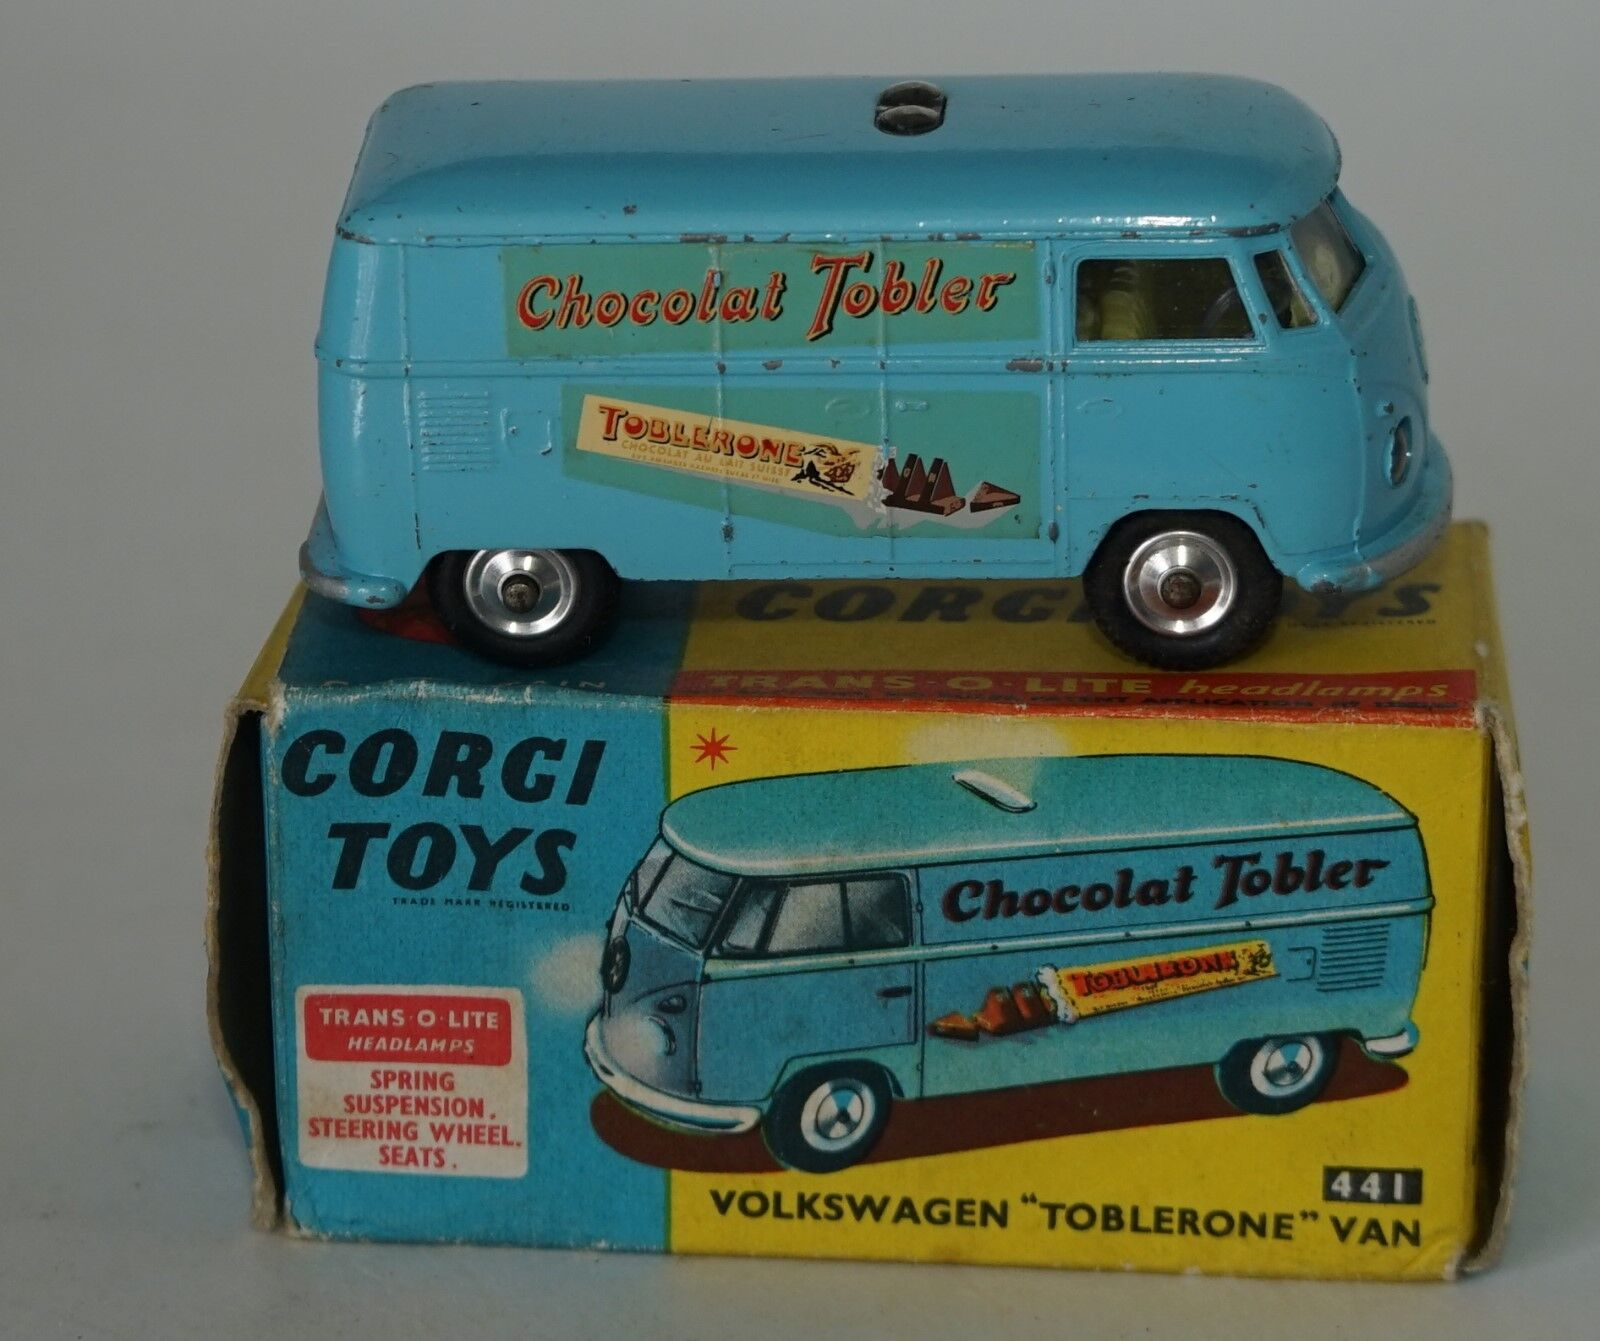 Corgi Toys 441 VolkswagenToblerone Van Pale bluee with TRANS-O-LITE lights